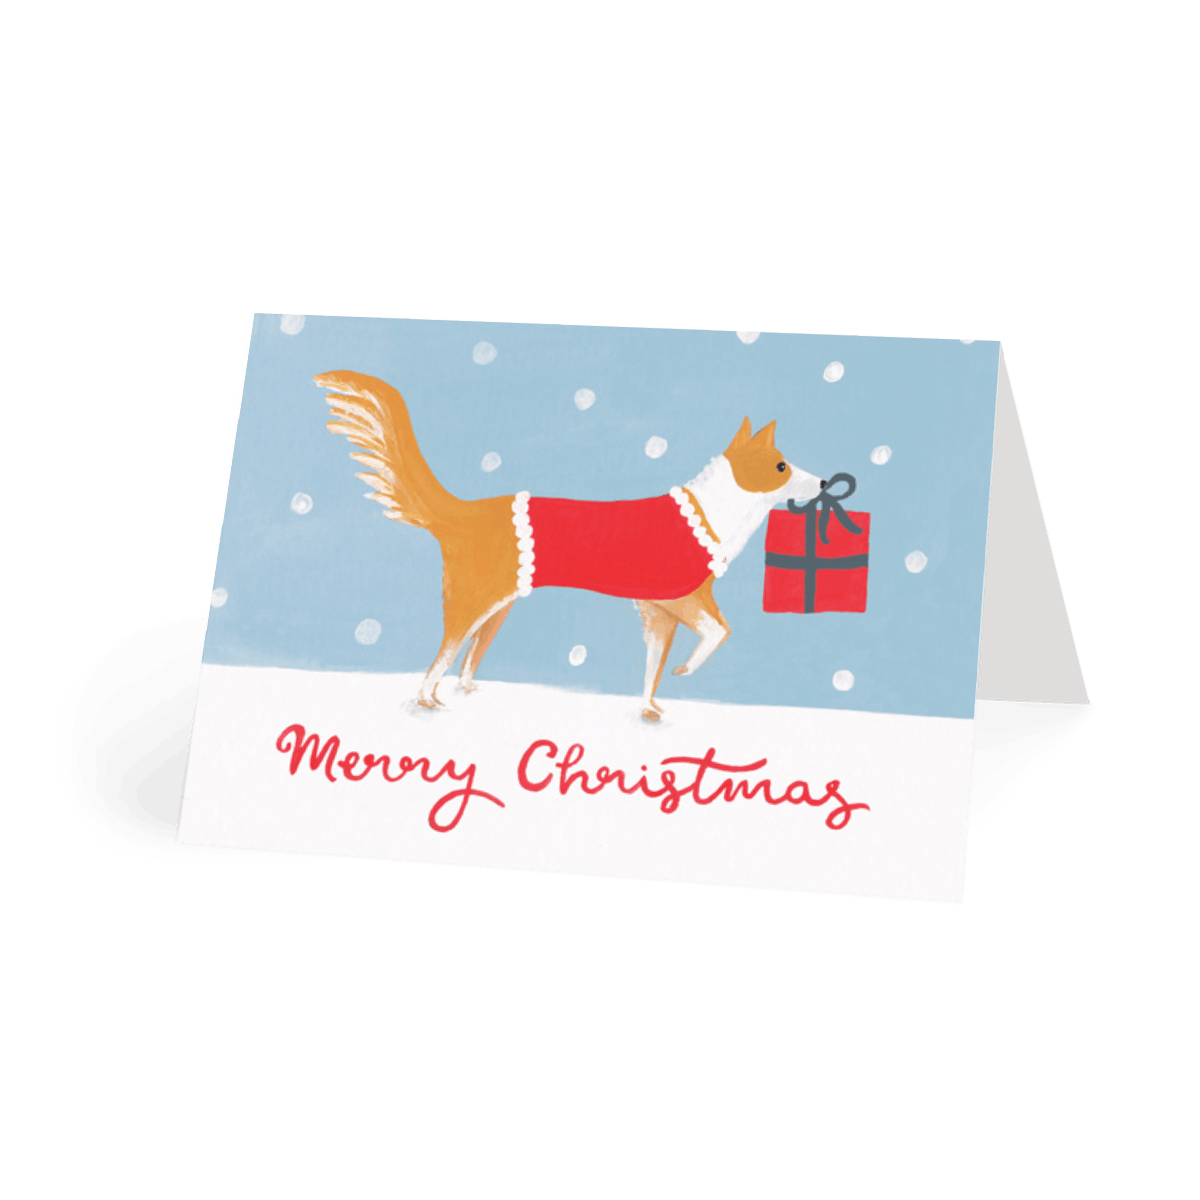 Https%3a%2f%2fwww.papier.com%2fproduct image%2f25351%2f14%2fchristmas collie 6328 front 1499679996.png?ixlib=rb 1.1